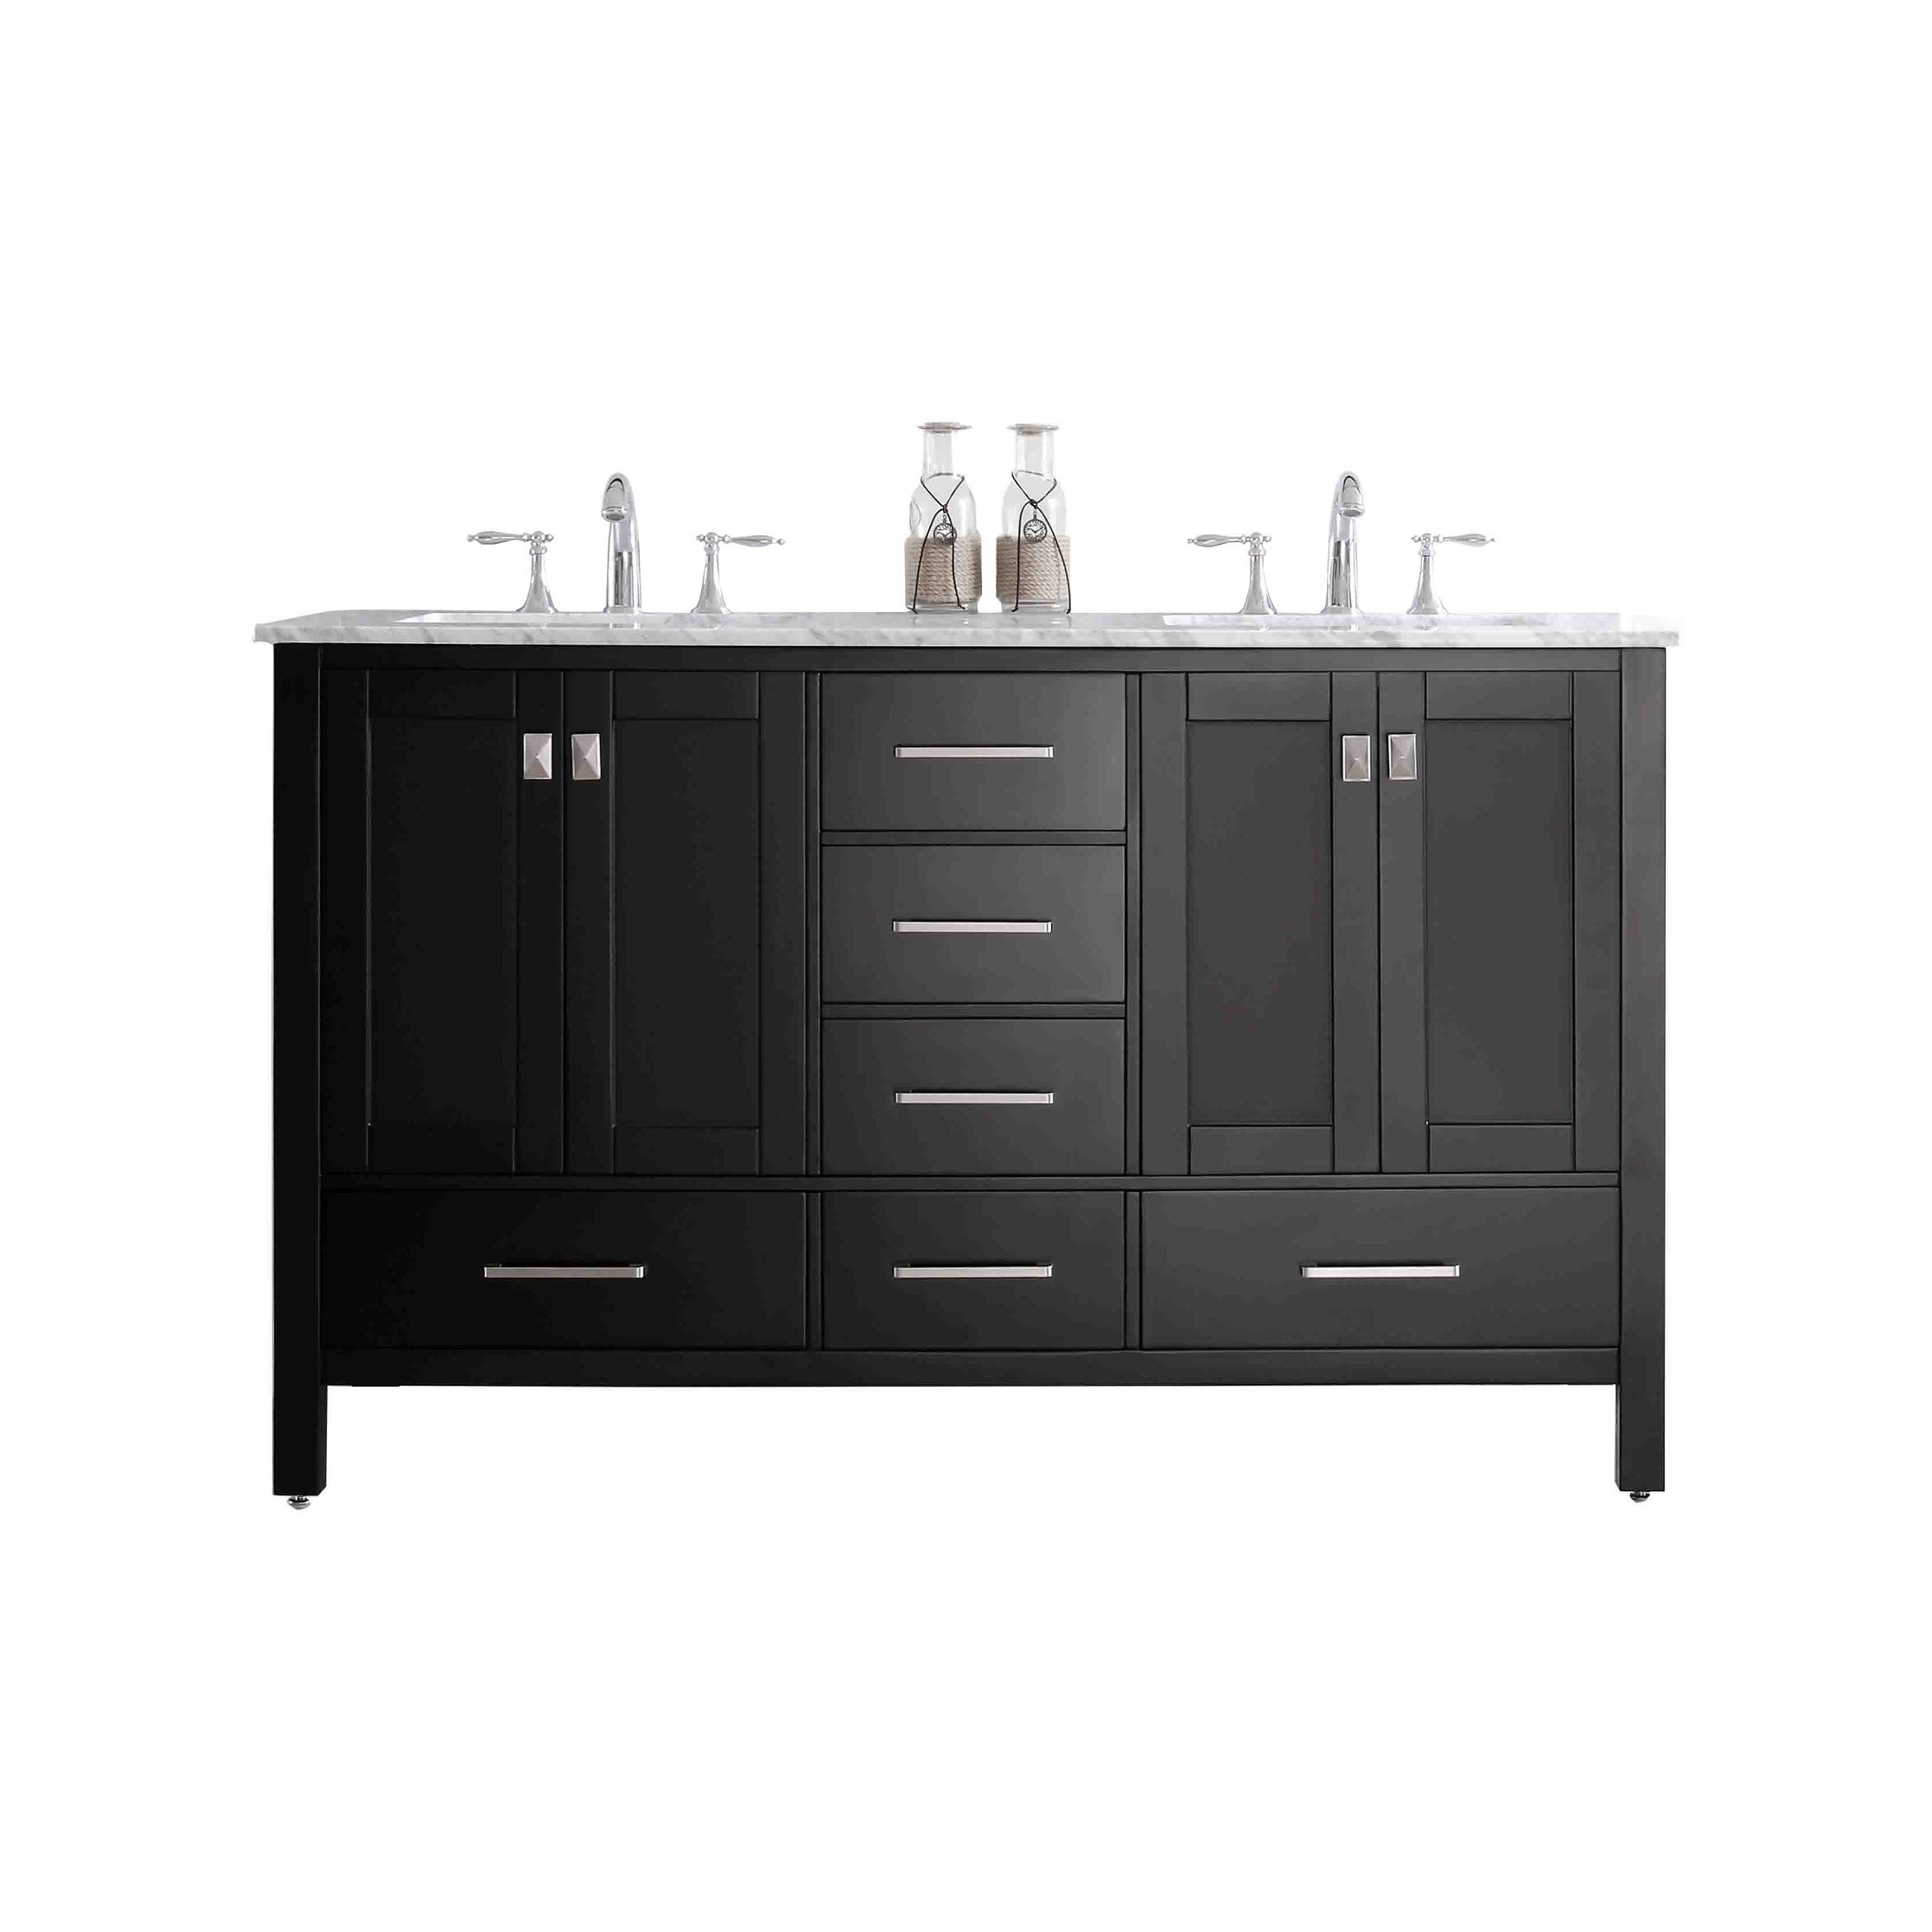 Eviva Aberdeen White Carrera Countertop 60-inch Transitional Espresso Bathroom Vanity